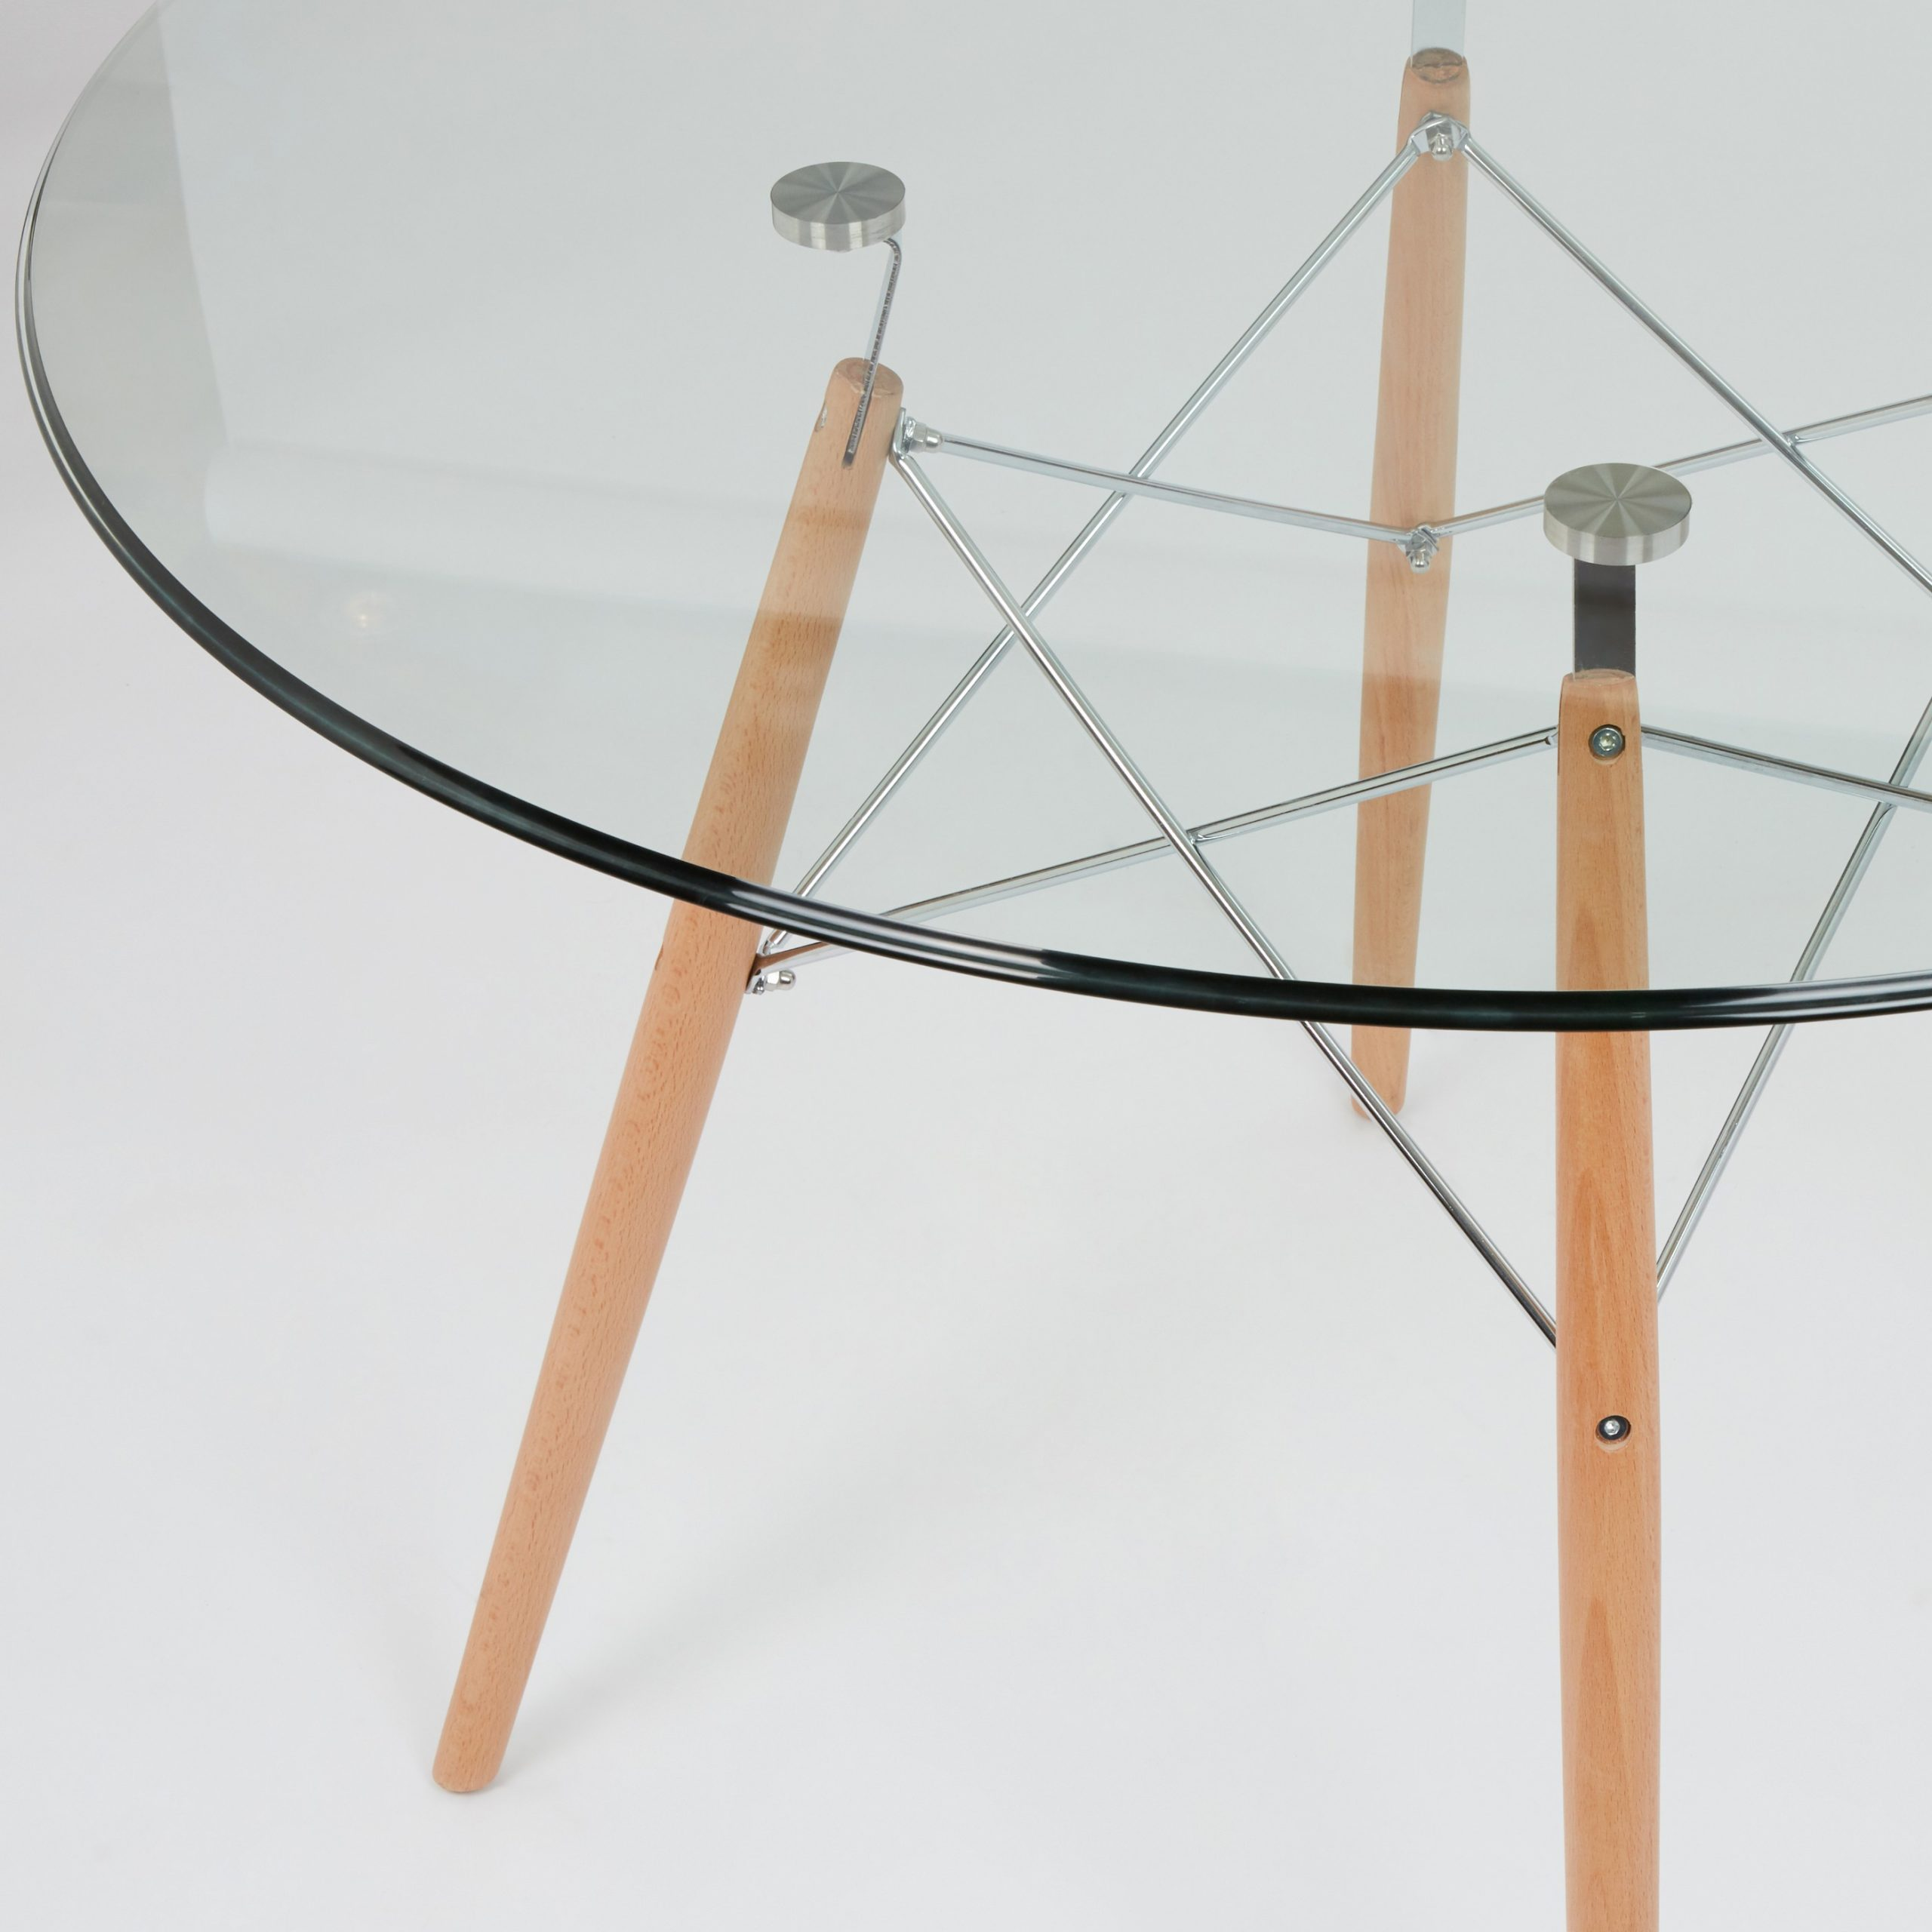 Best And Newest Eames Style Dining Tables With Chromed Leg And Tempered Glass Top Regarding Dining Glass Table With Beechwood Legs (Size: 100Cm (View 3 of 30)